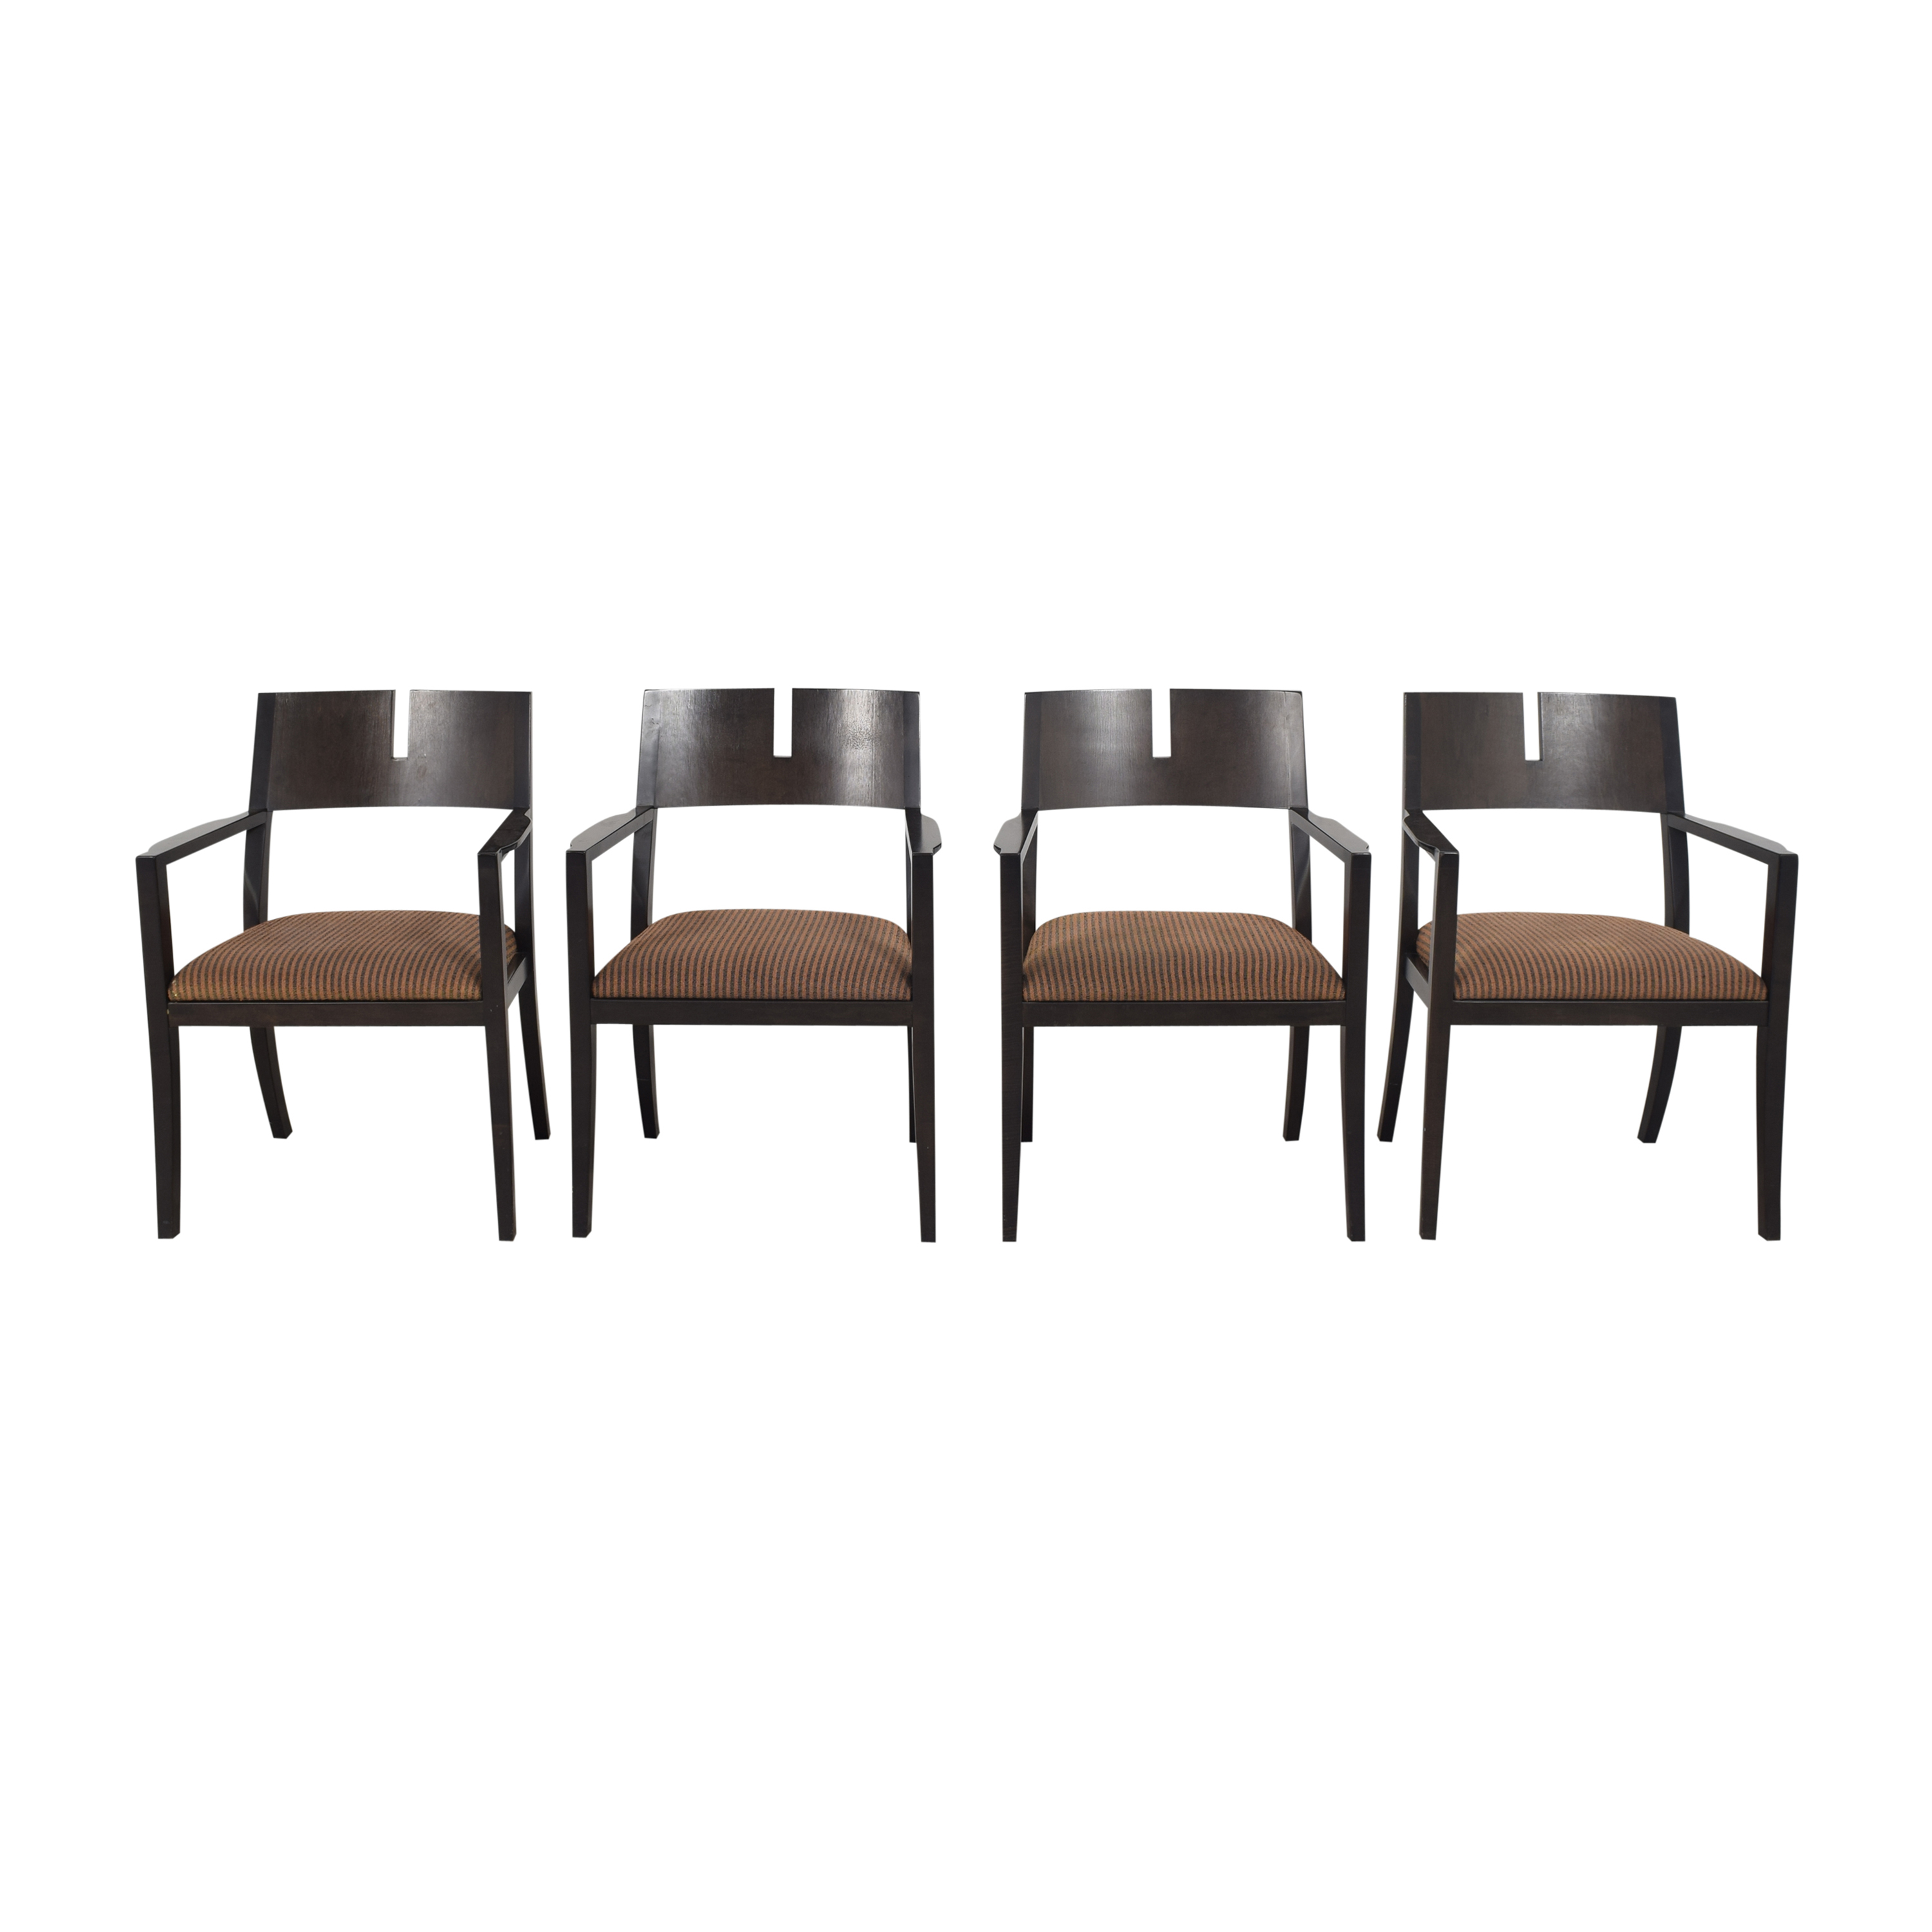 Martin Brattrud Martin Brattrud Upholstered Dining Chairs used